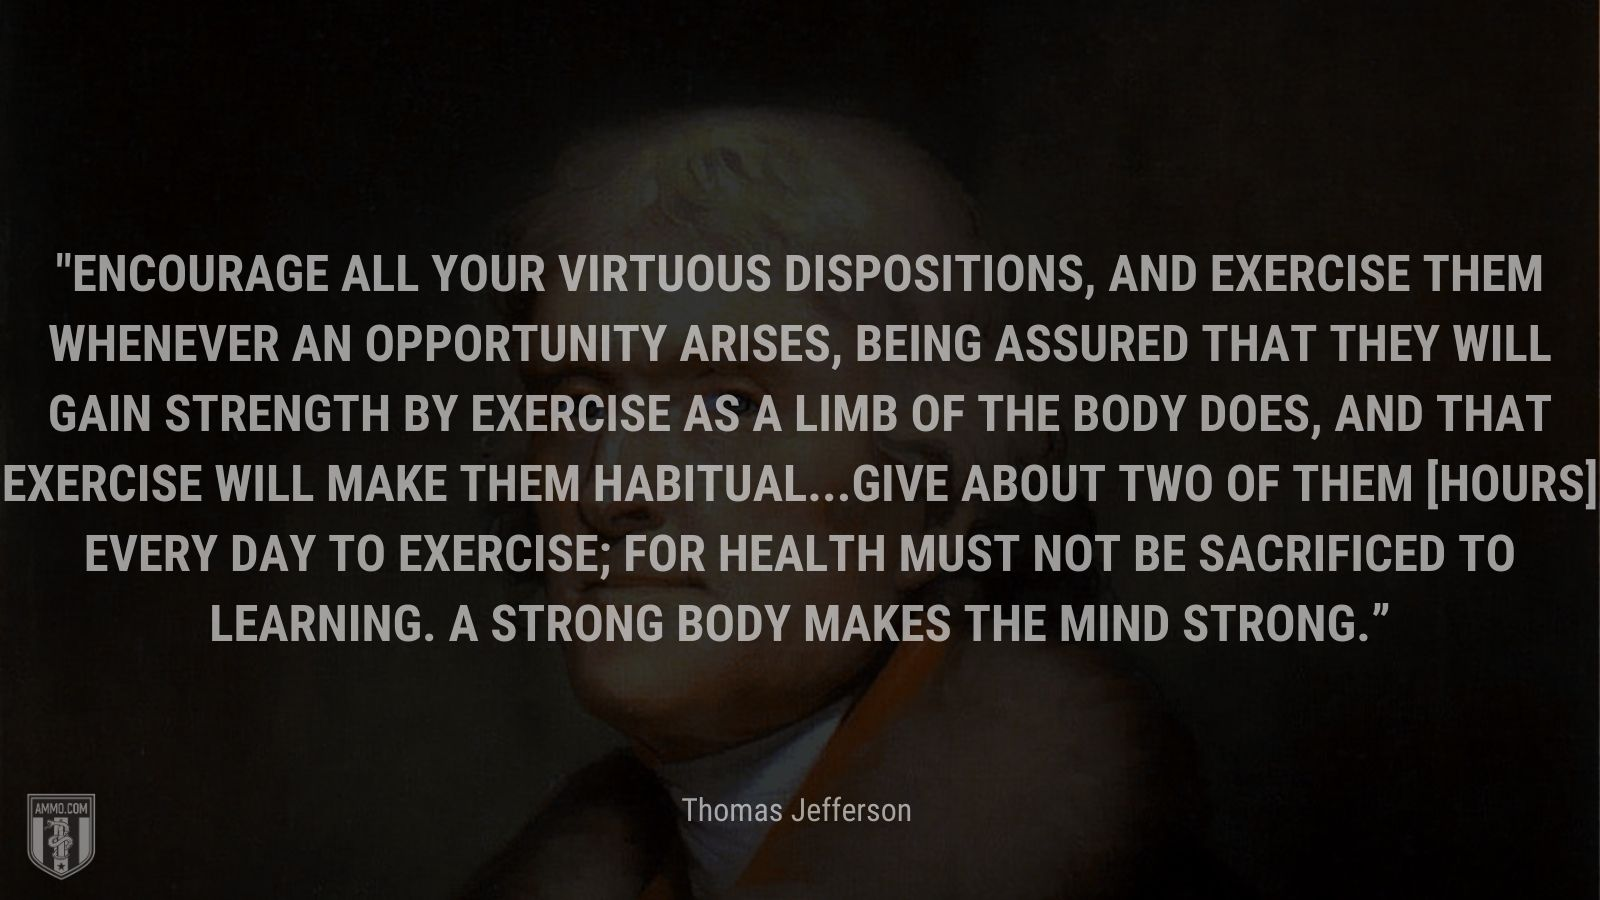 """""""Encourage all your virtuous dispositions, and exercise them whenever an opportunity arises, being assured that they will gain strength by exercise as a limb of the body does, and that exercise will make them habitual...Give about two of them [hours] every day to exercise; for health must not be sacrificed to learning. A strong body makes the mind strong."""" - Thomas Jefferson"""